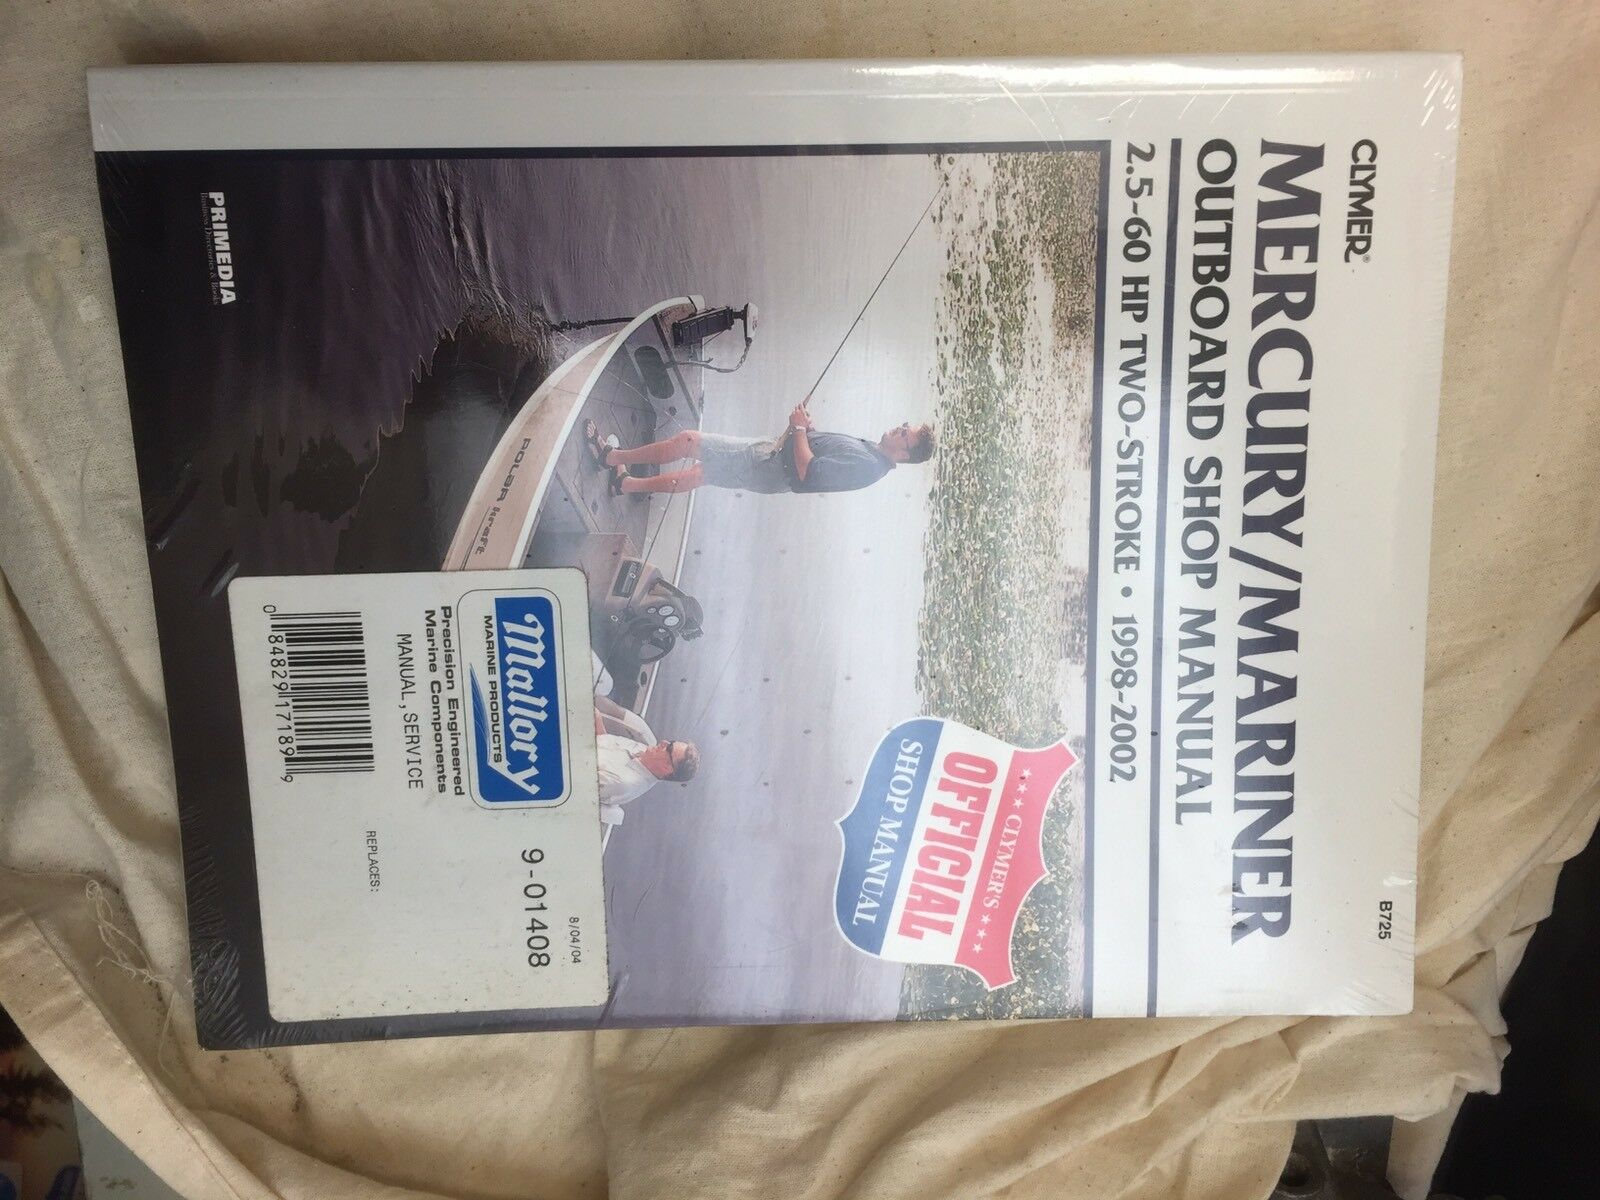 Mercury/Mariner 2.5-60 Hp 4 Stroke Outboard Engine Workshop Manual 1998-2002  1 of 2Only 1 available ...